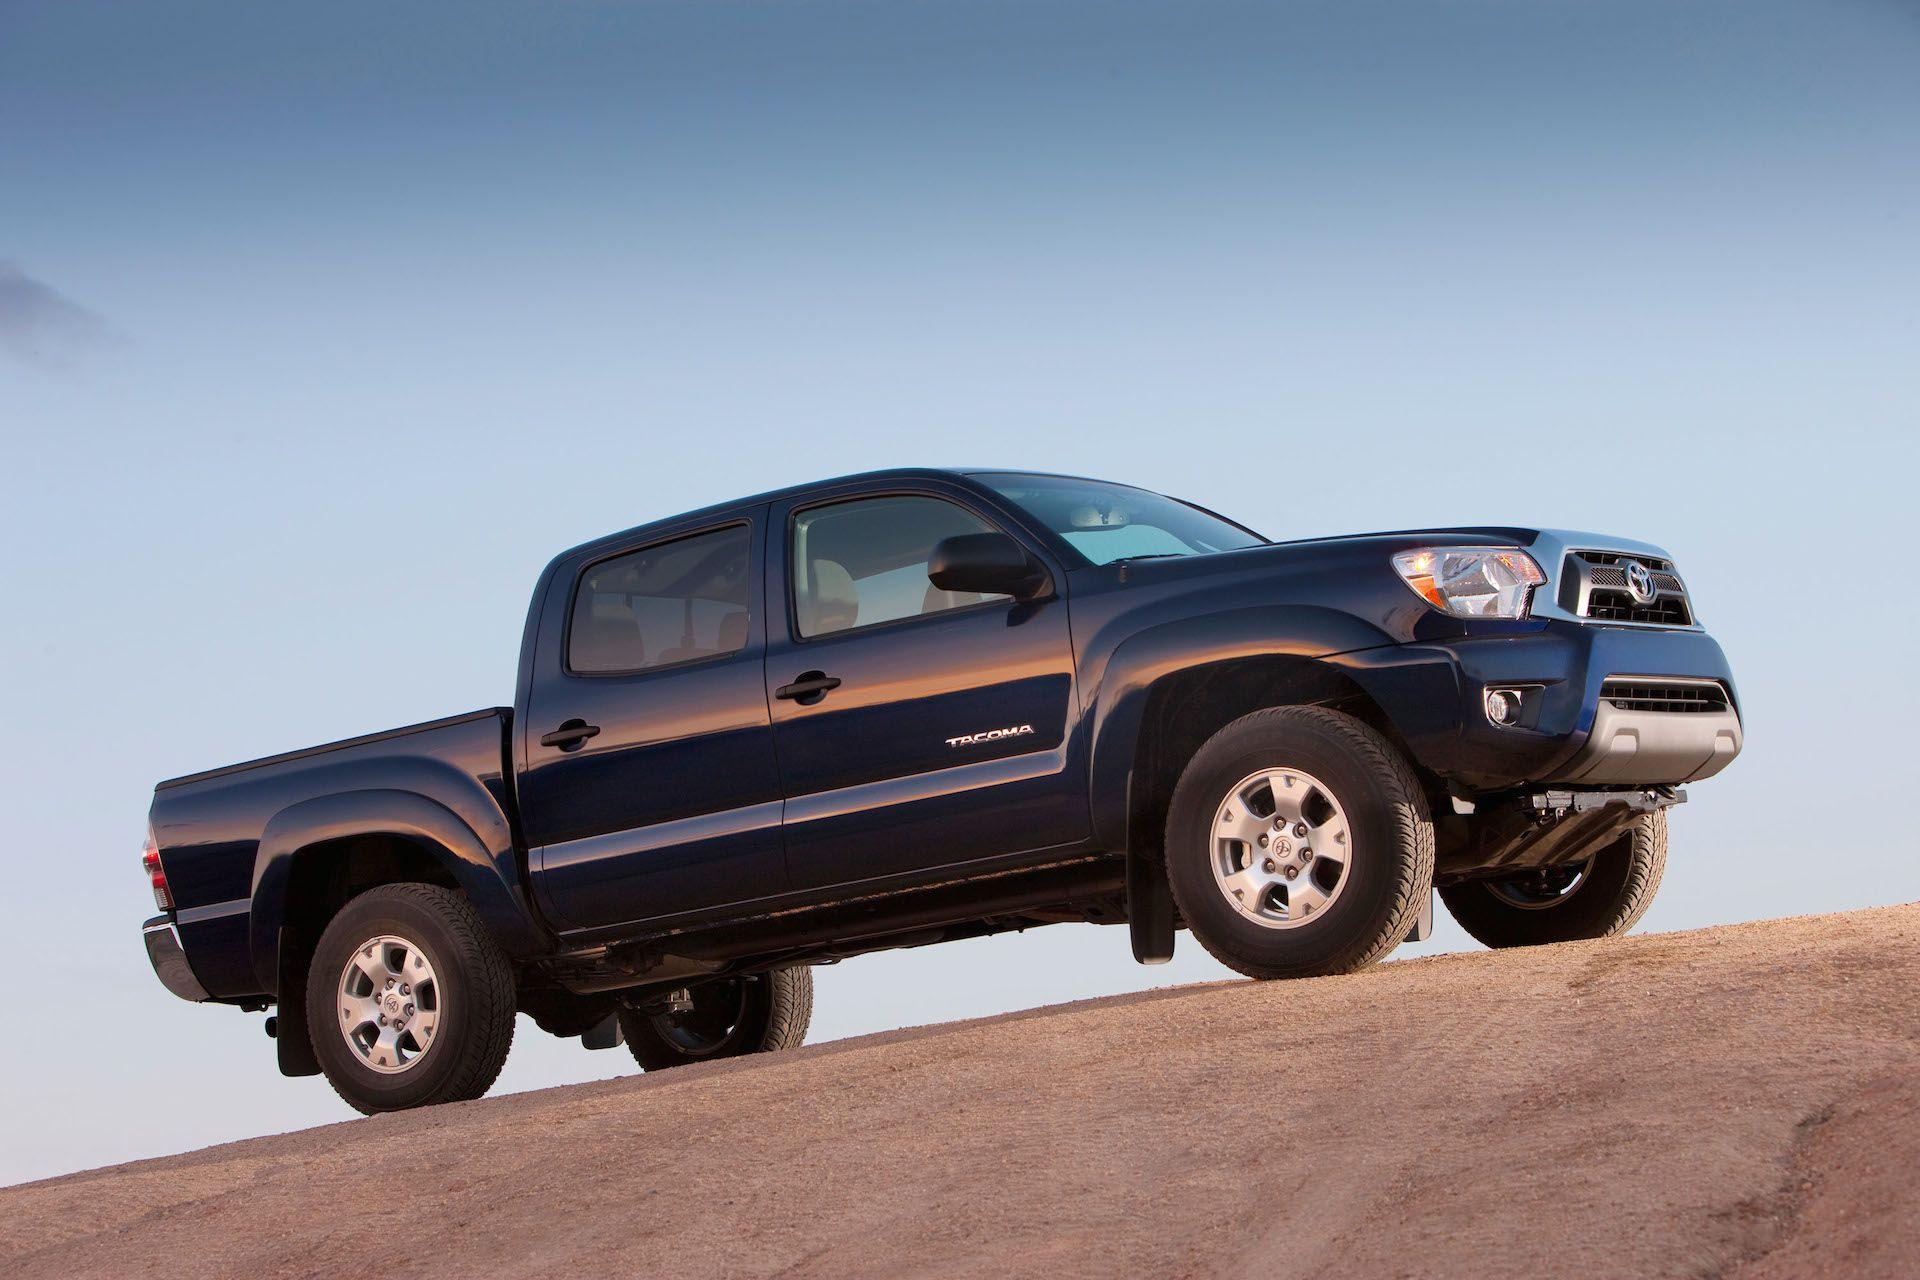 2015 Toyota Tacoma Photos and Wallpapers